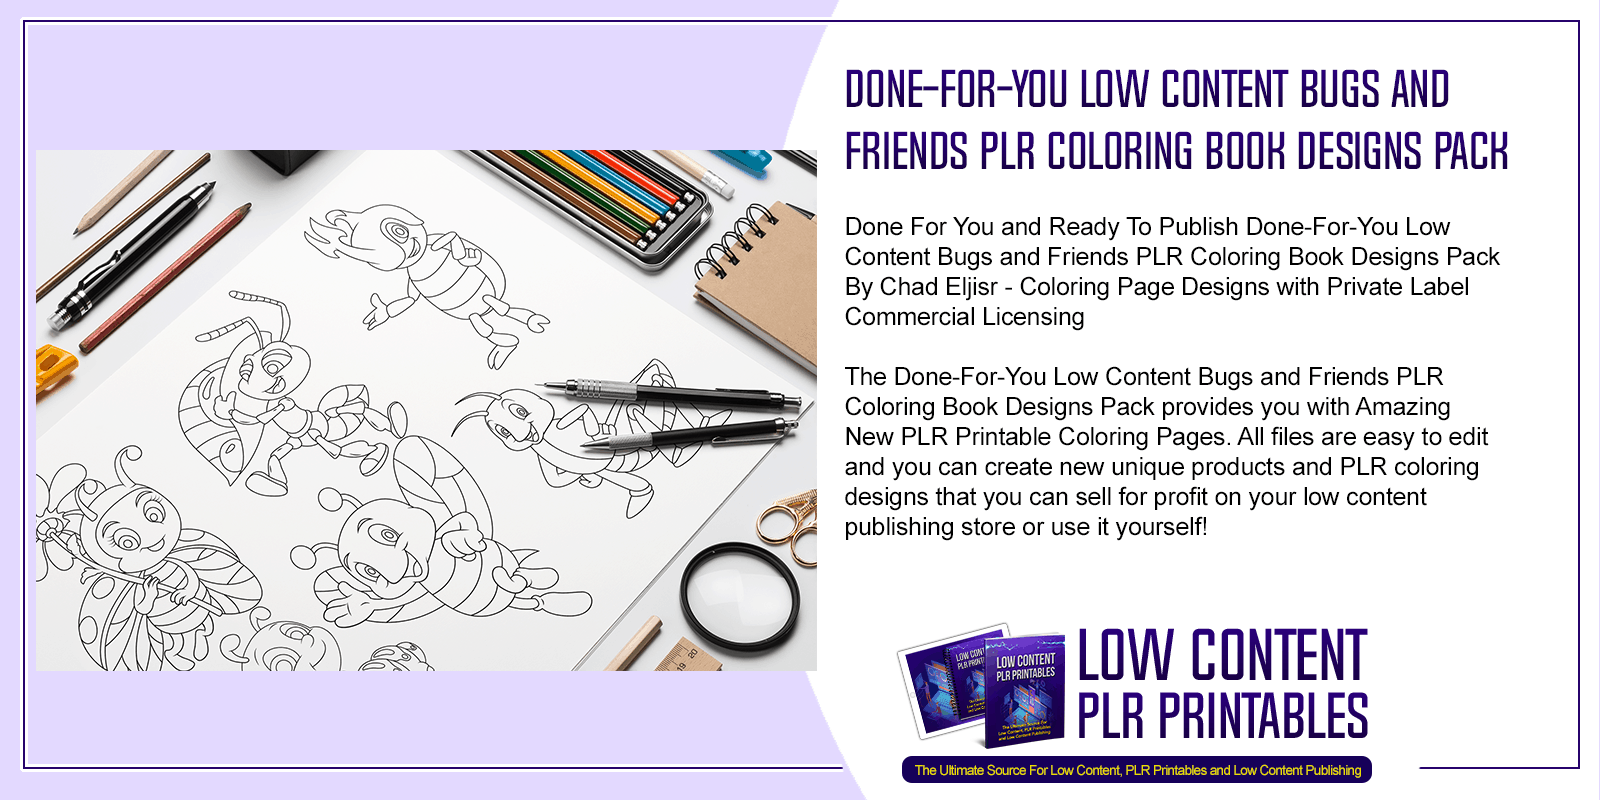 Done For You Low Content Bugs and Friends PLR Coloring Book Designs Pack